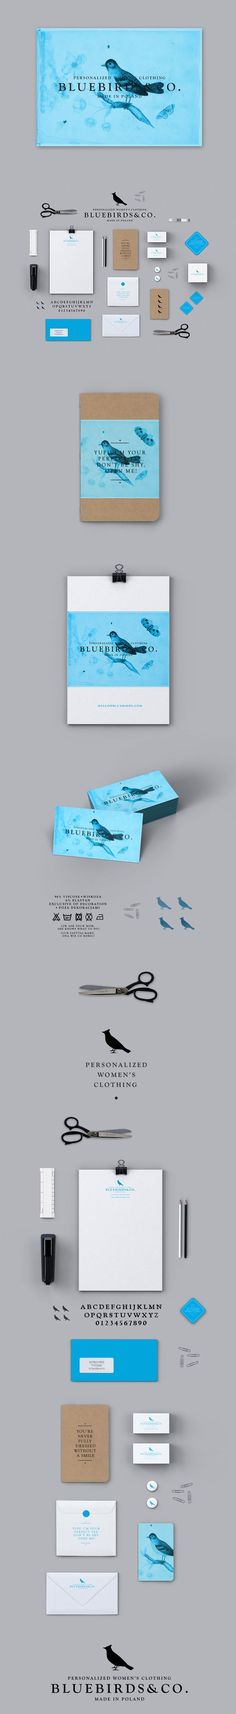 Unique Brand Identity Design on the Internet, Bluebirds & Co #branding #brandidentity #identitydesign